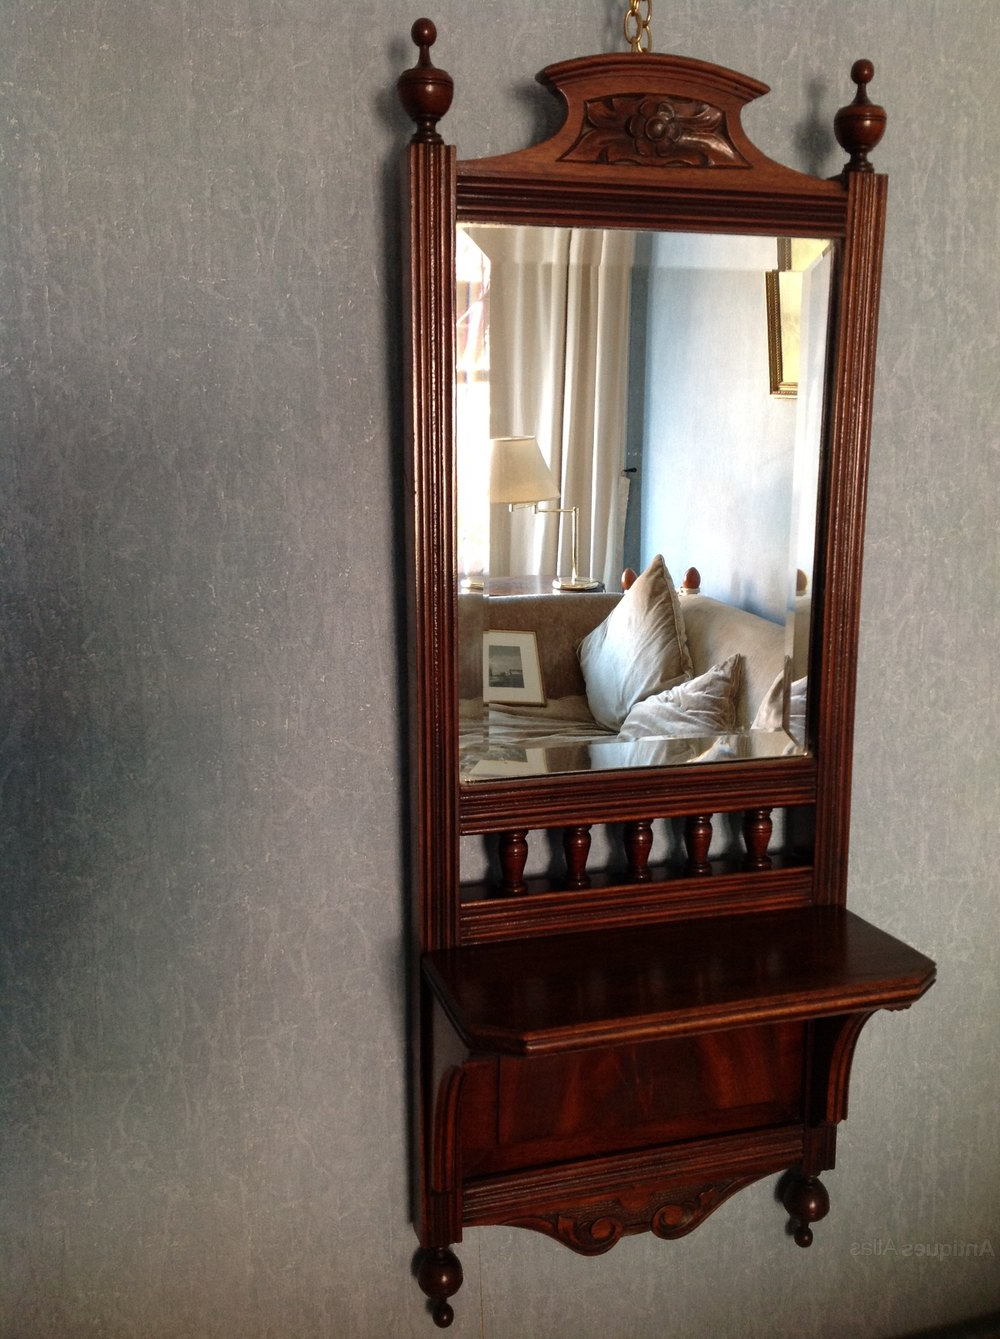 Antiques Atlas – Edwardian (C 1900) Carved Mahogany Wall Mirror Inside Most Up To Date Mahogany Wall Mirrors (Gallery 15 of 20)